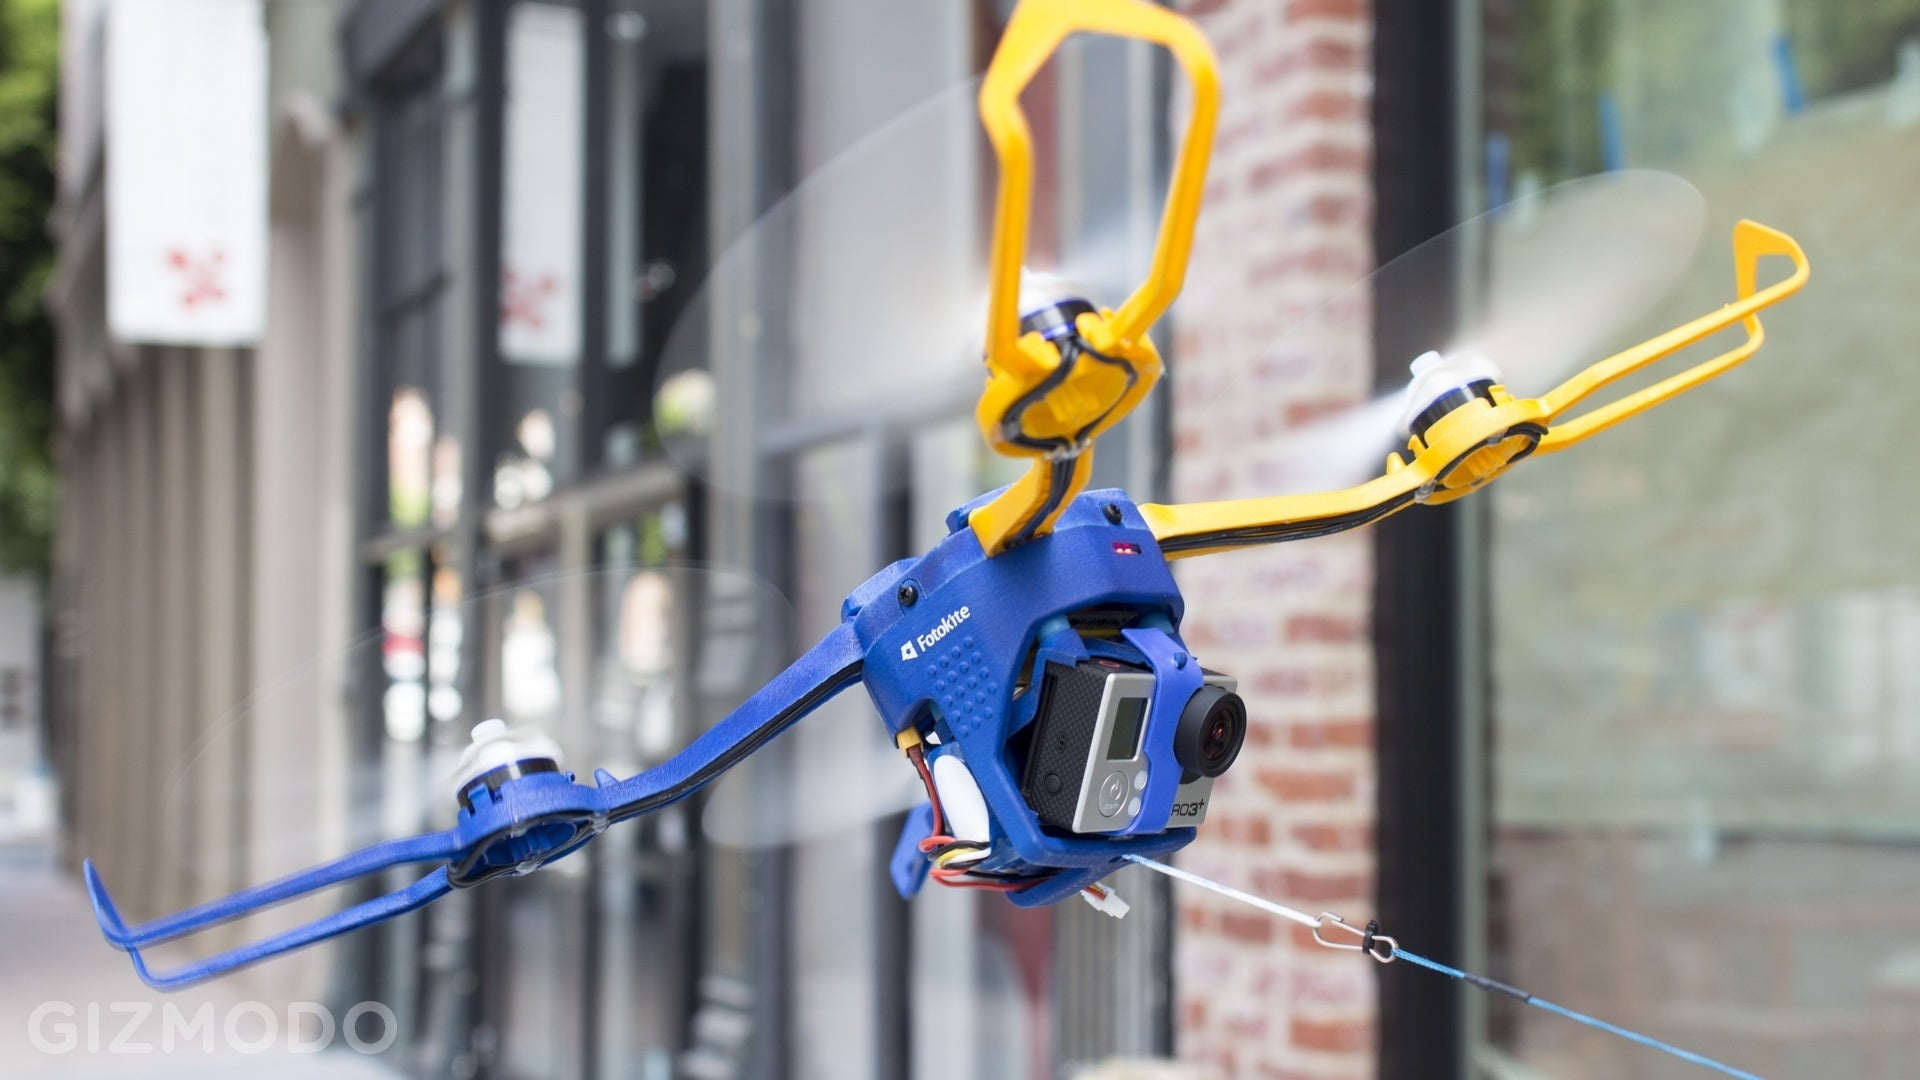 This Drone Goes From Canister To Aerial Selfie In 20 Seconds Flat